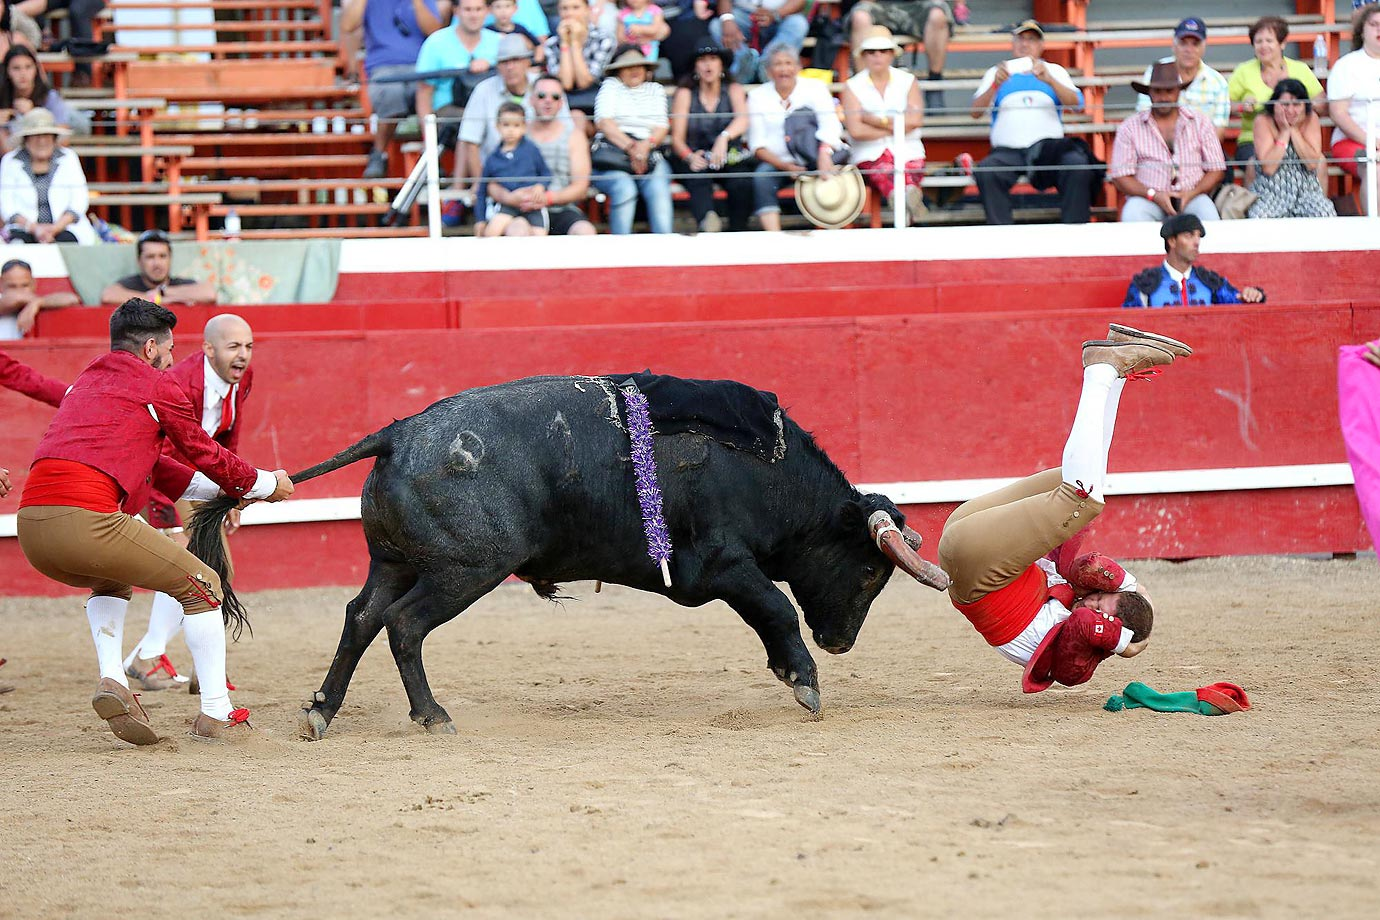 A portuguese bullfighter prepares for a rough landing after tangling with a bull during an exhibition of Portuguese Style bullfighting in Dundalk, Ontario.